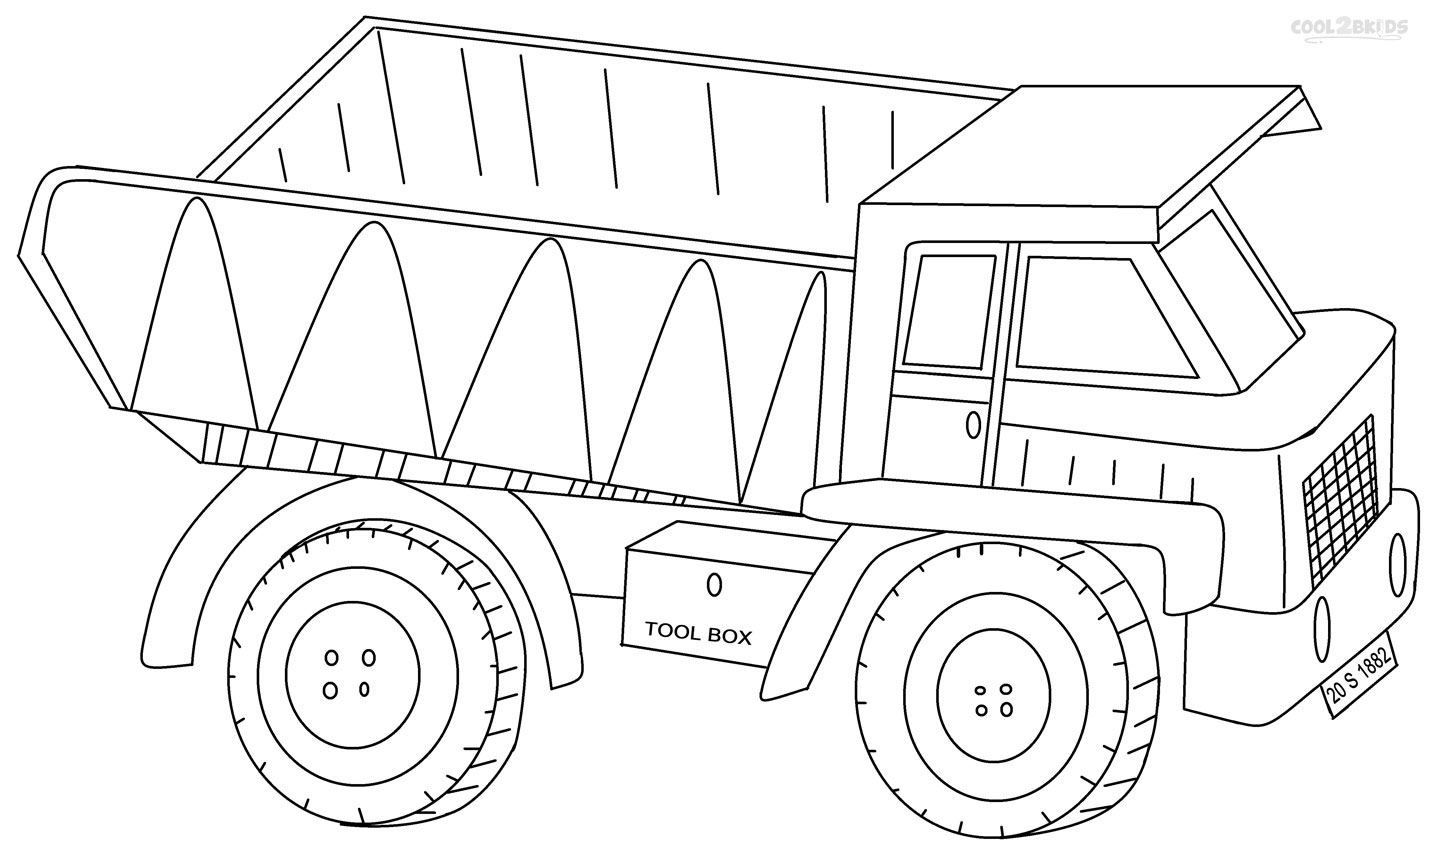 Printable Monster Truck Coloring Pages 66663 in addition Animated Gif Boboiboy besides Monster Truck Coloring Pages as well Construction Vehicles Coloring Pages as well Tractor Trailer Printable Coloring Page. on ford tonka truck